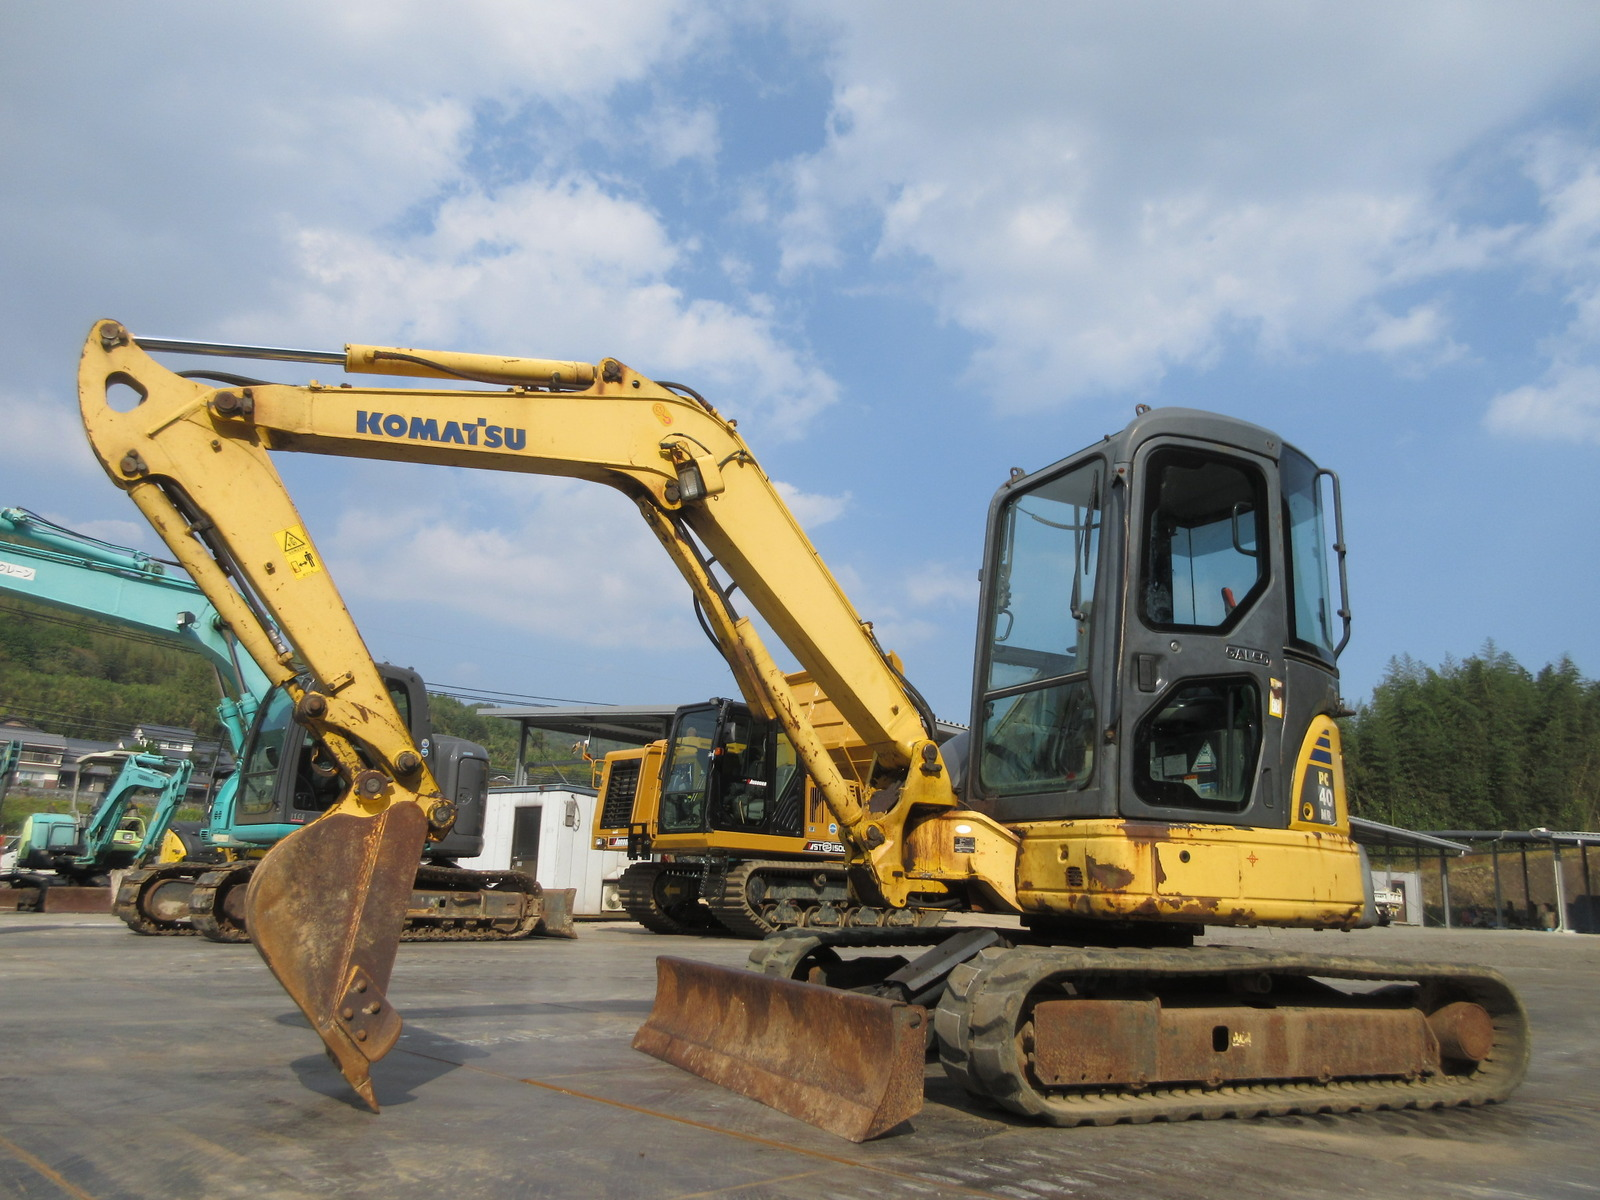 Used Construction Machine used Excavator KOMATSU PC40MR-2 Photos